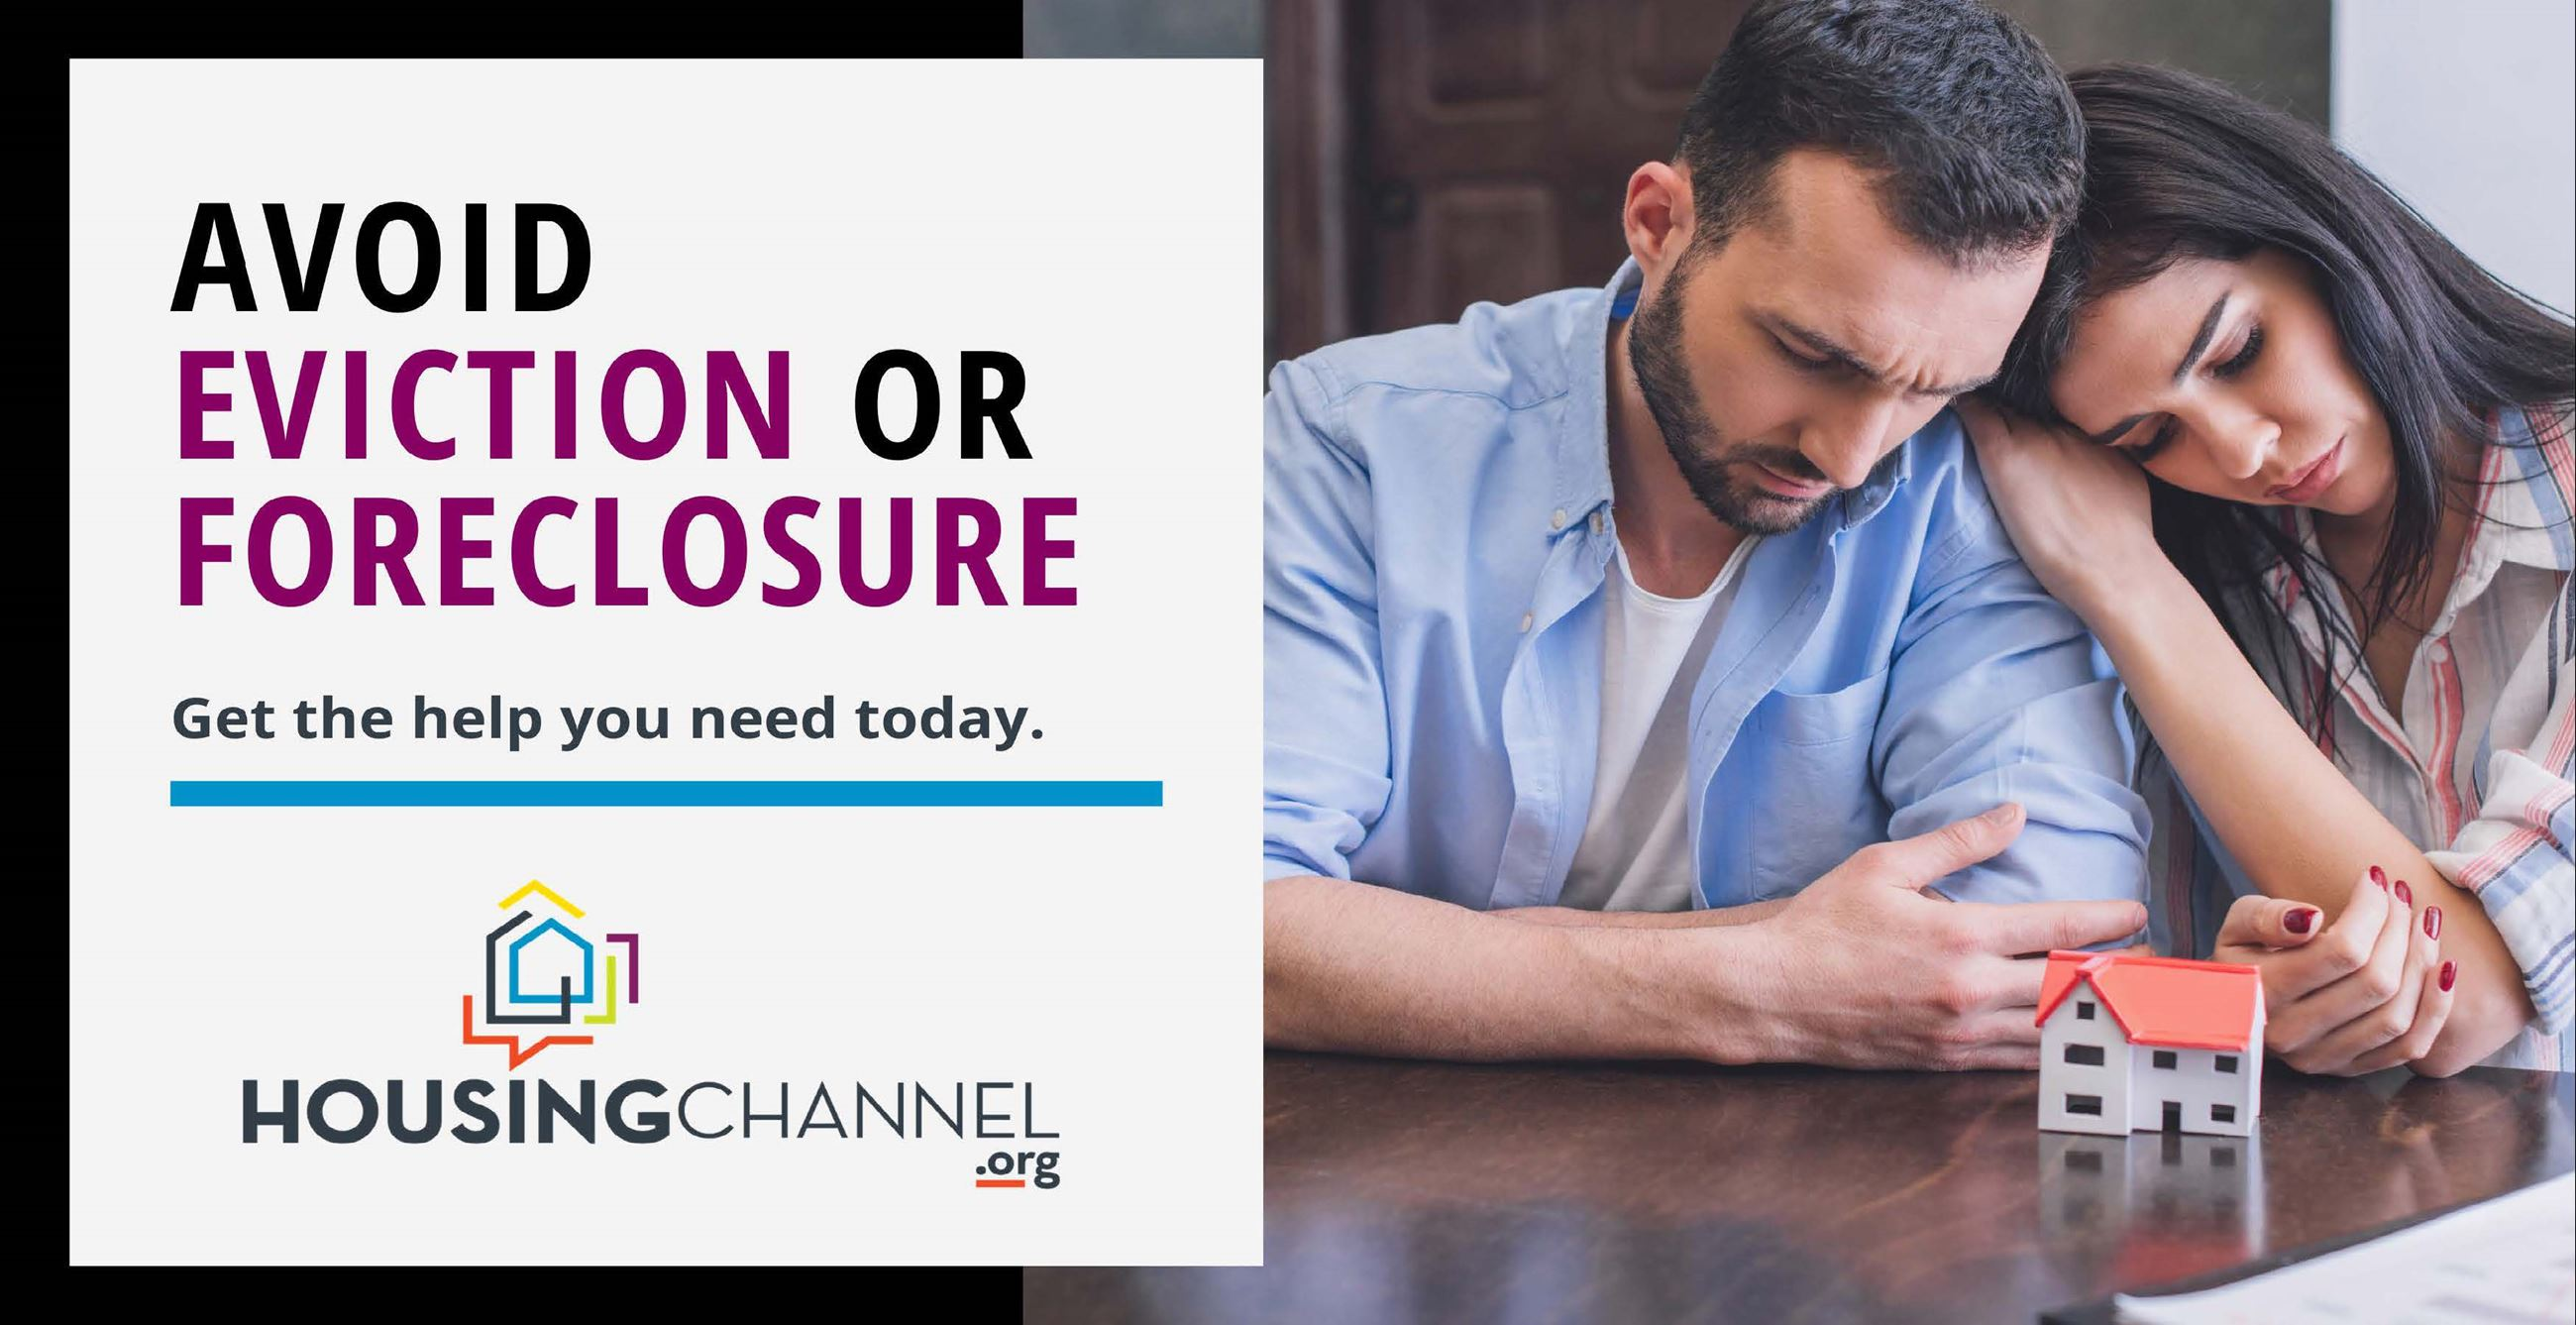 Housing Channel graphic